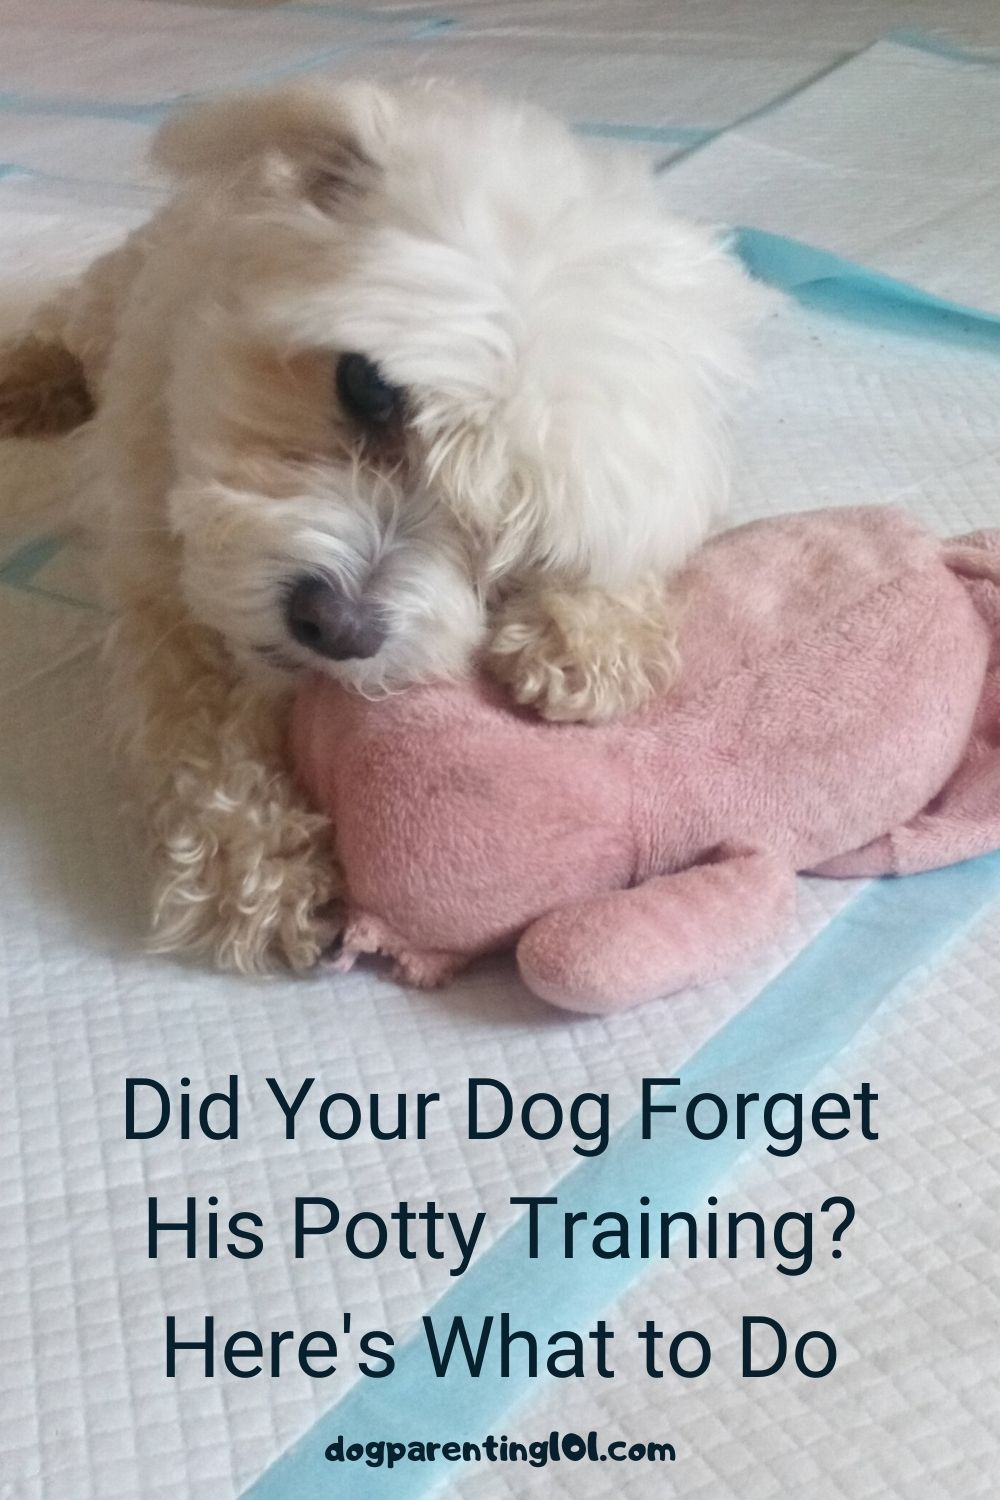 Did Your Dog Forget His Potty Training Here's What to Do